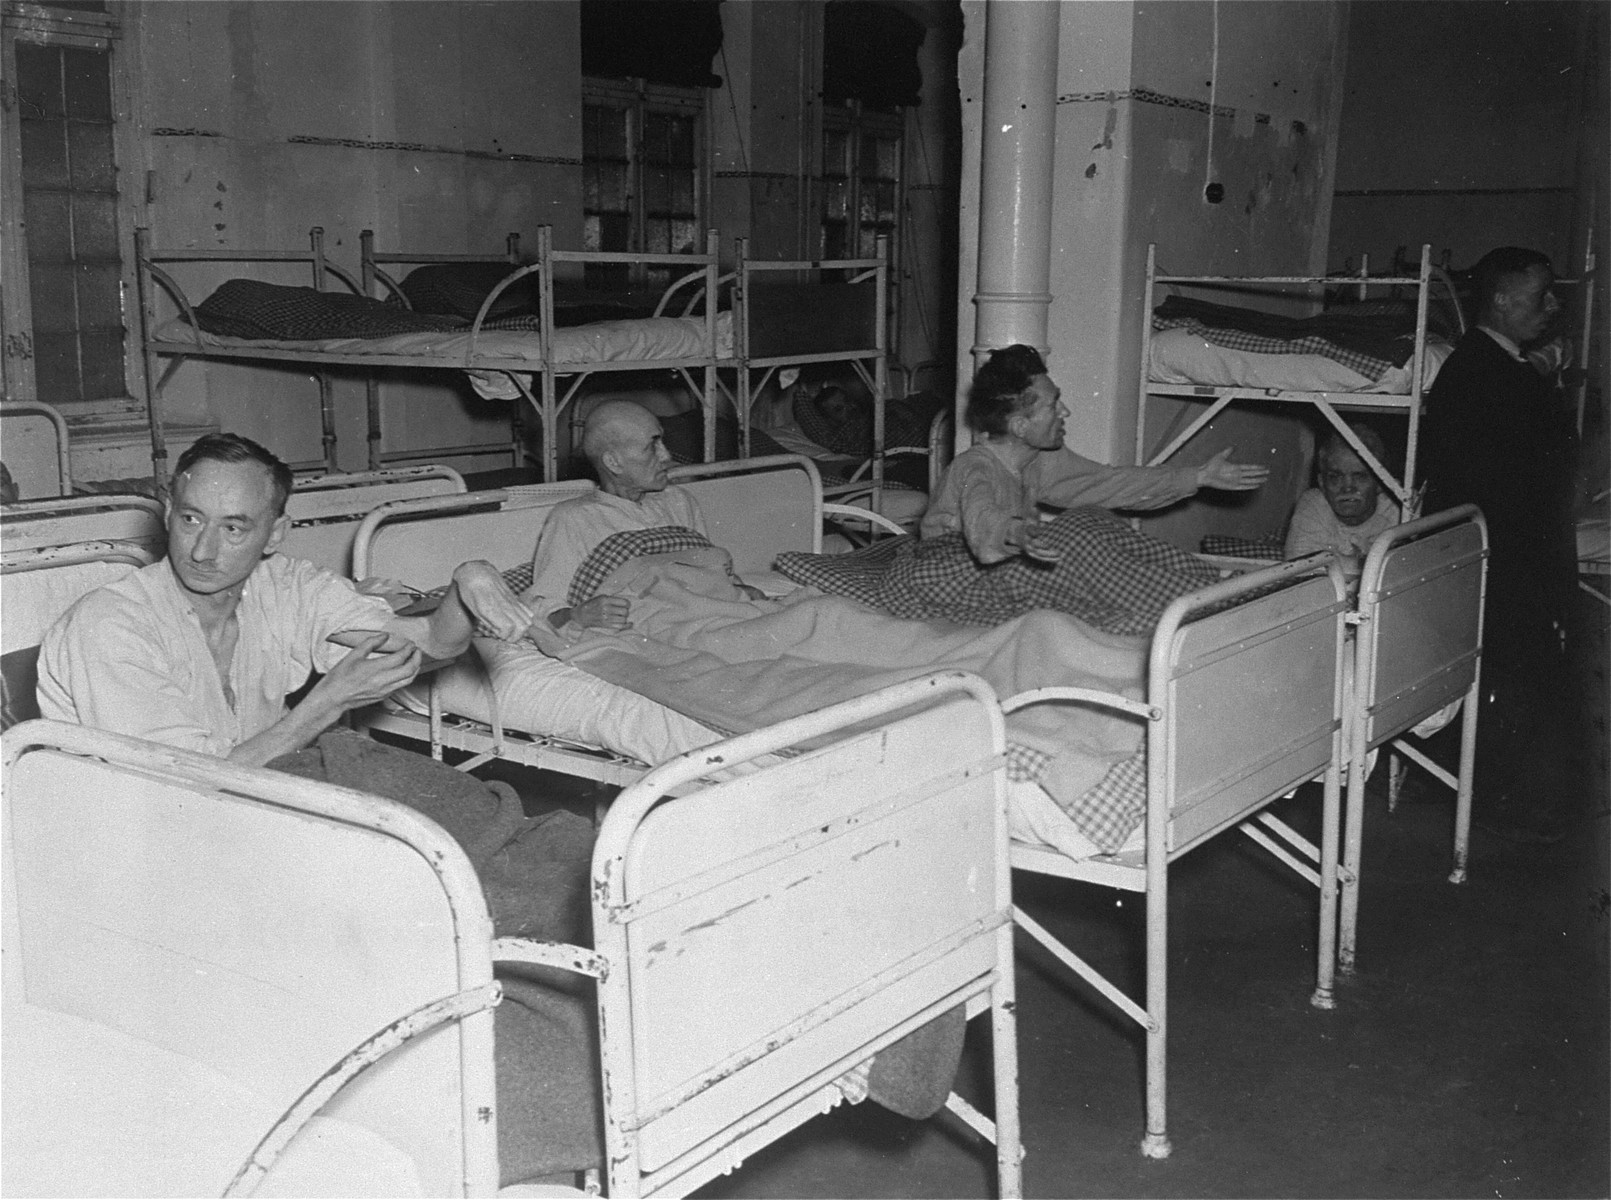 Three survivors rest in their beds at the Hadamar Institute.  The photograph was taken by an American military photographer soon after the liberation.